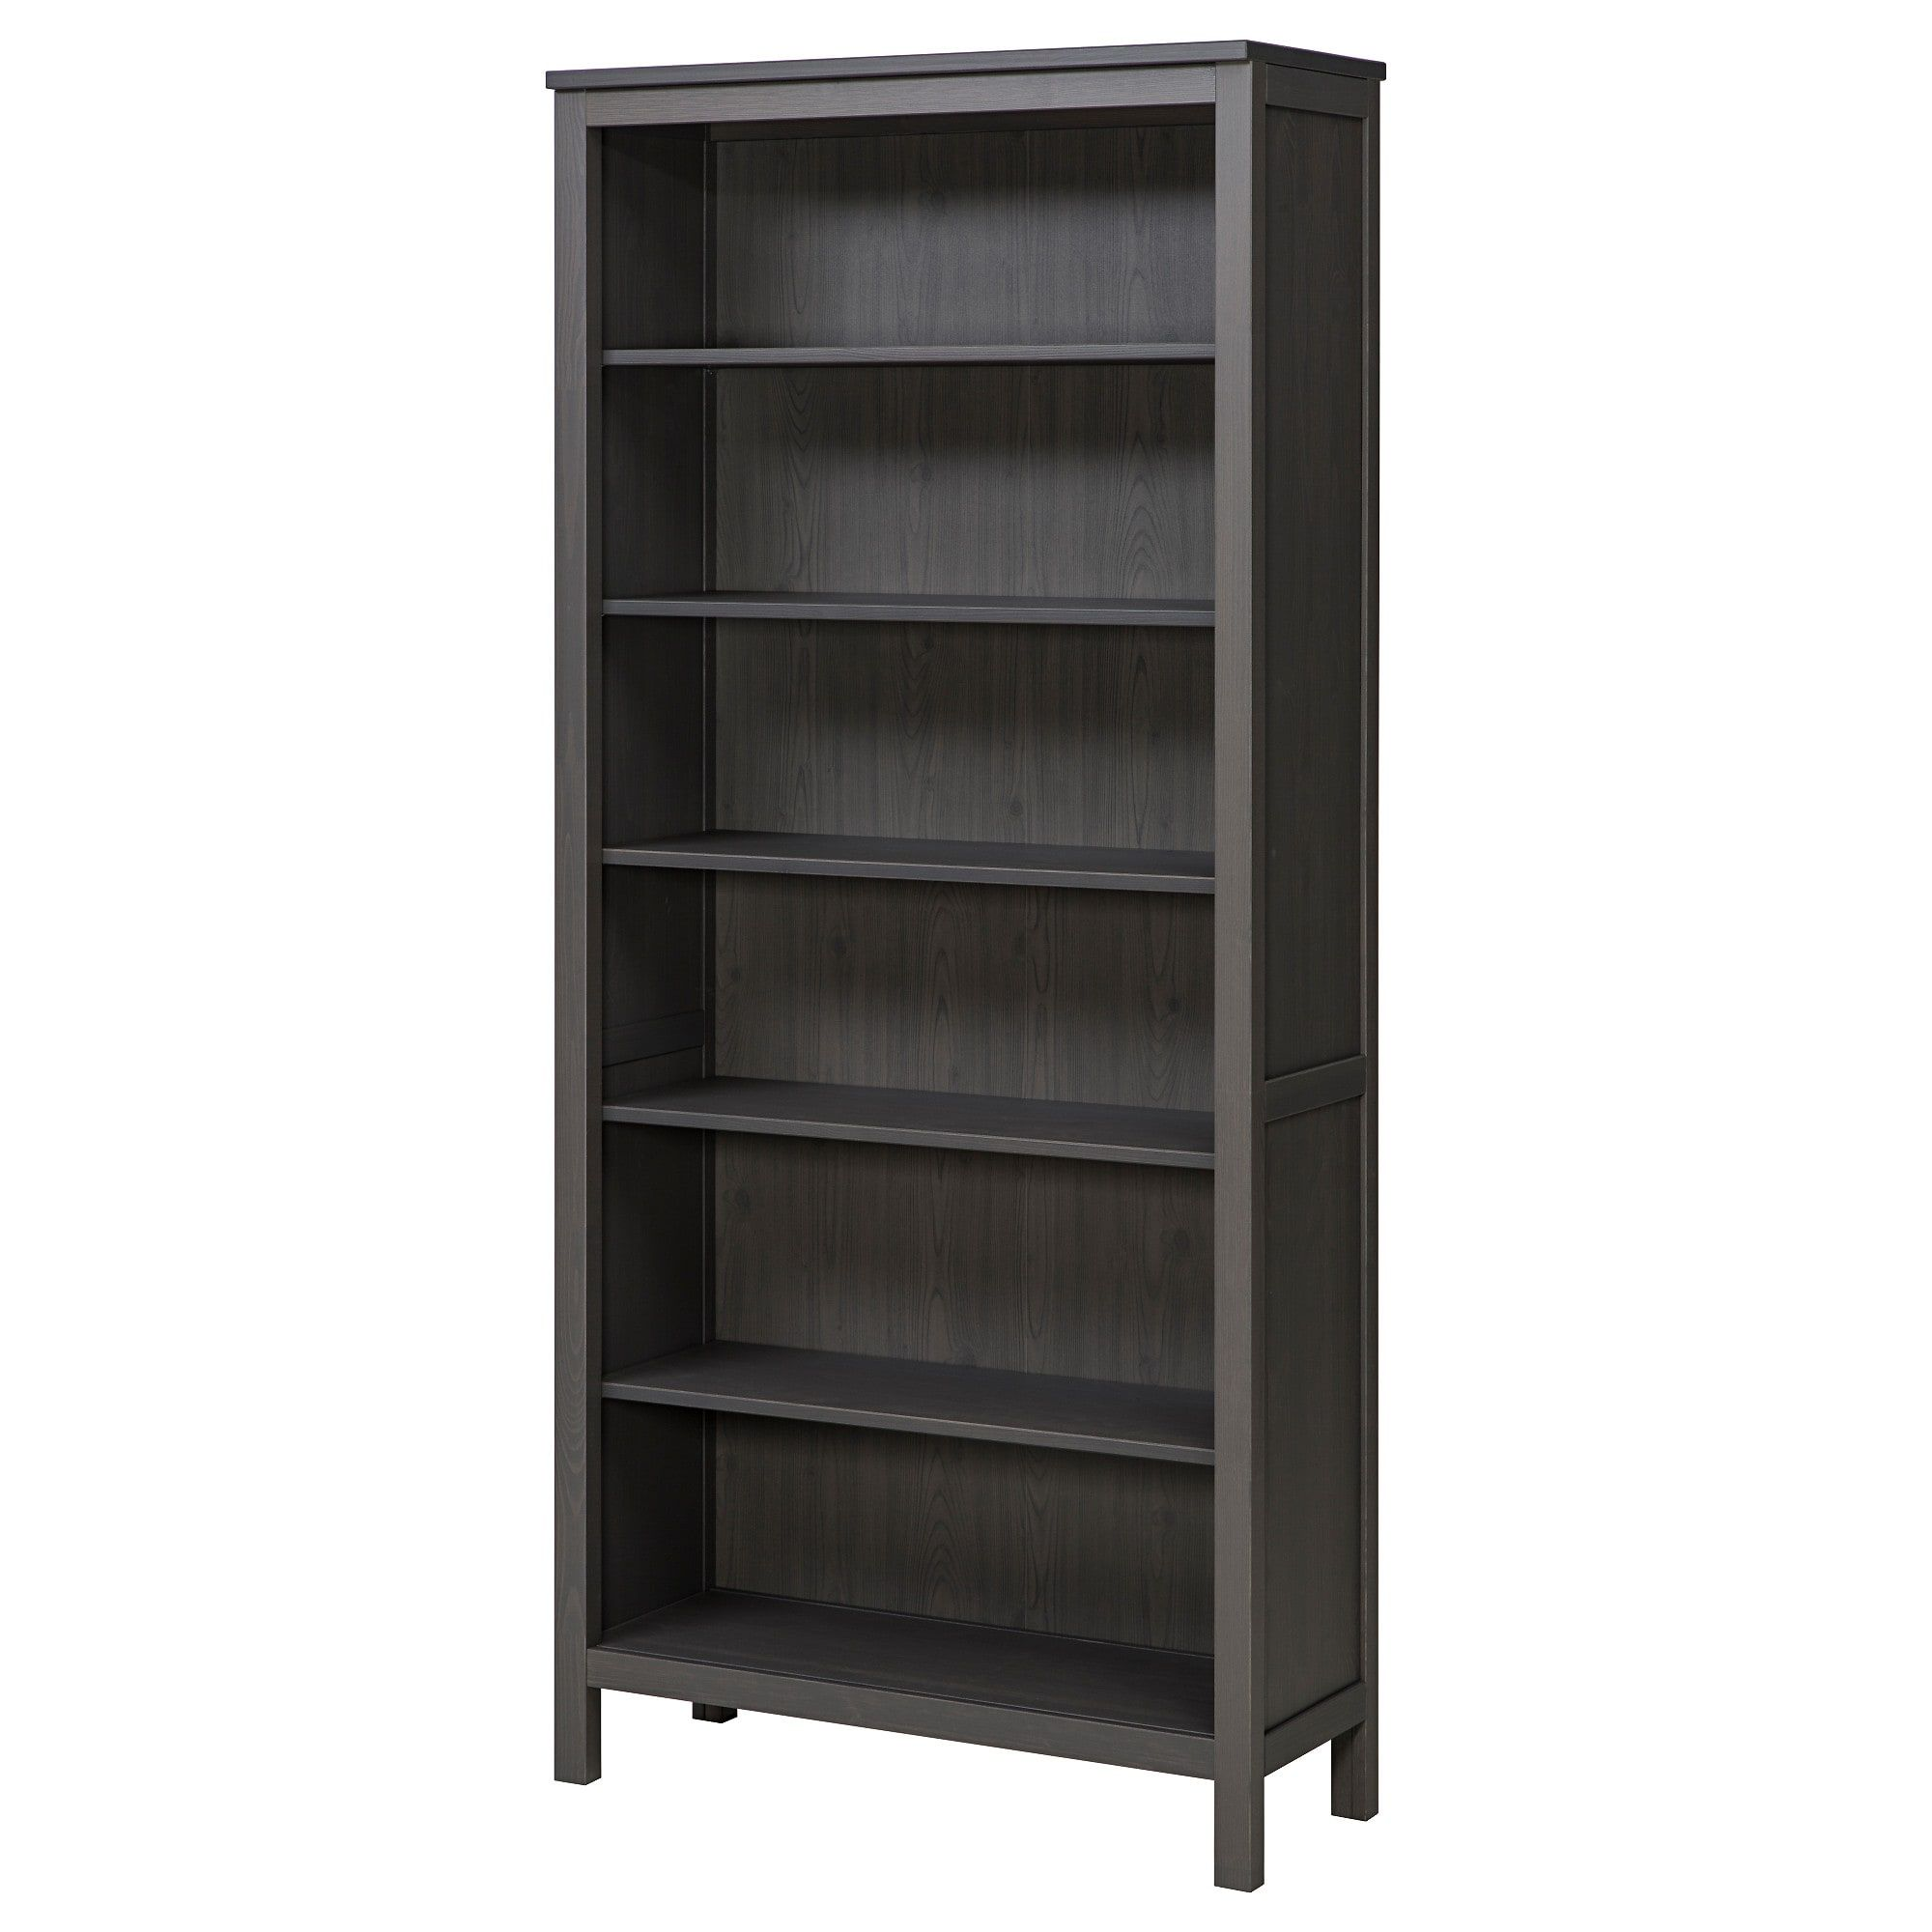 Hemnes Bookcase  Dark Gray Stained  Ikea  $14900